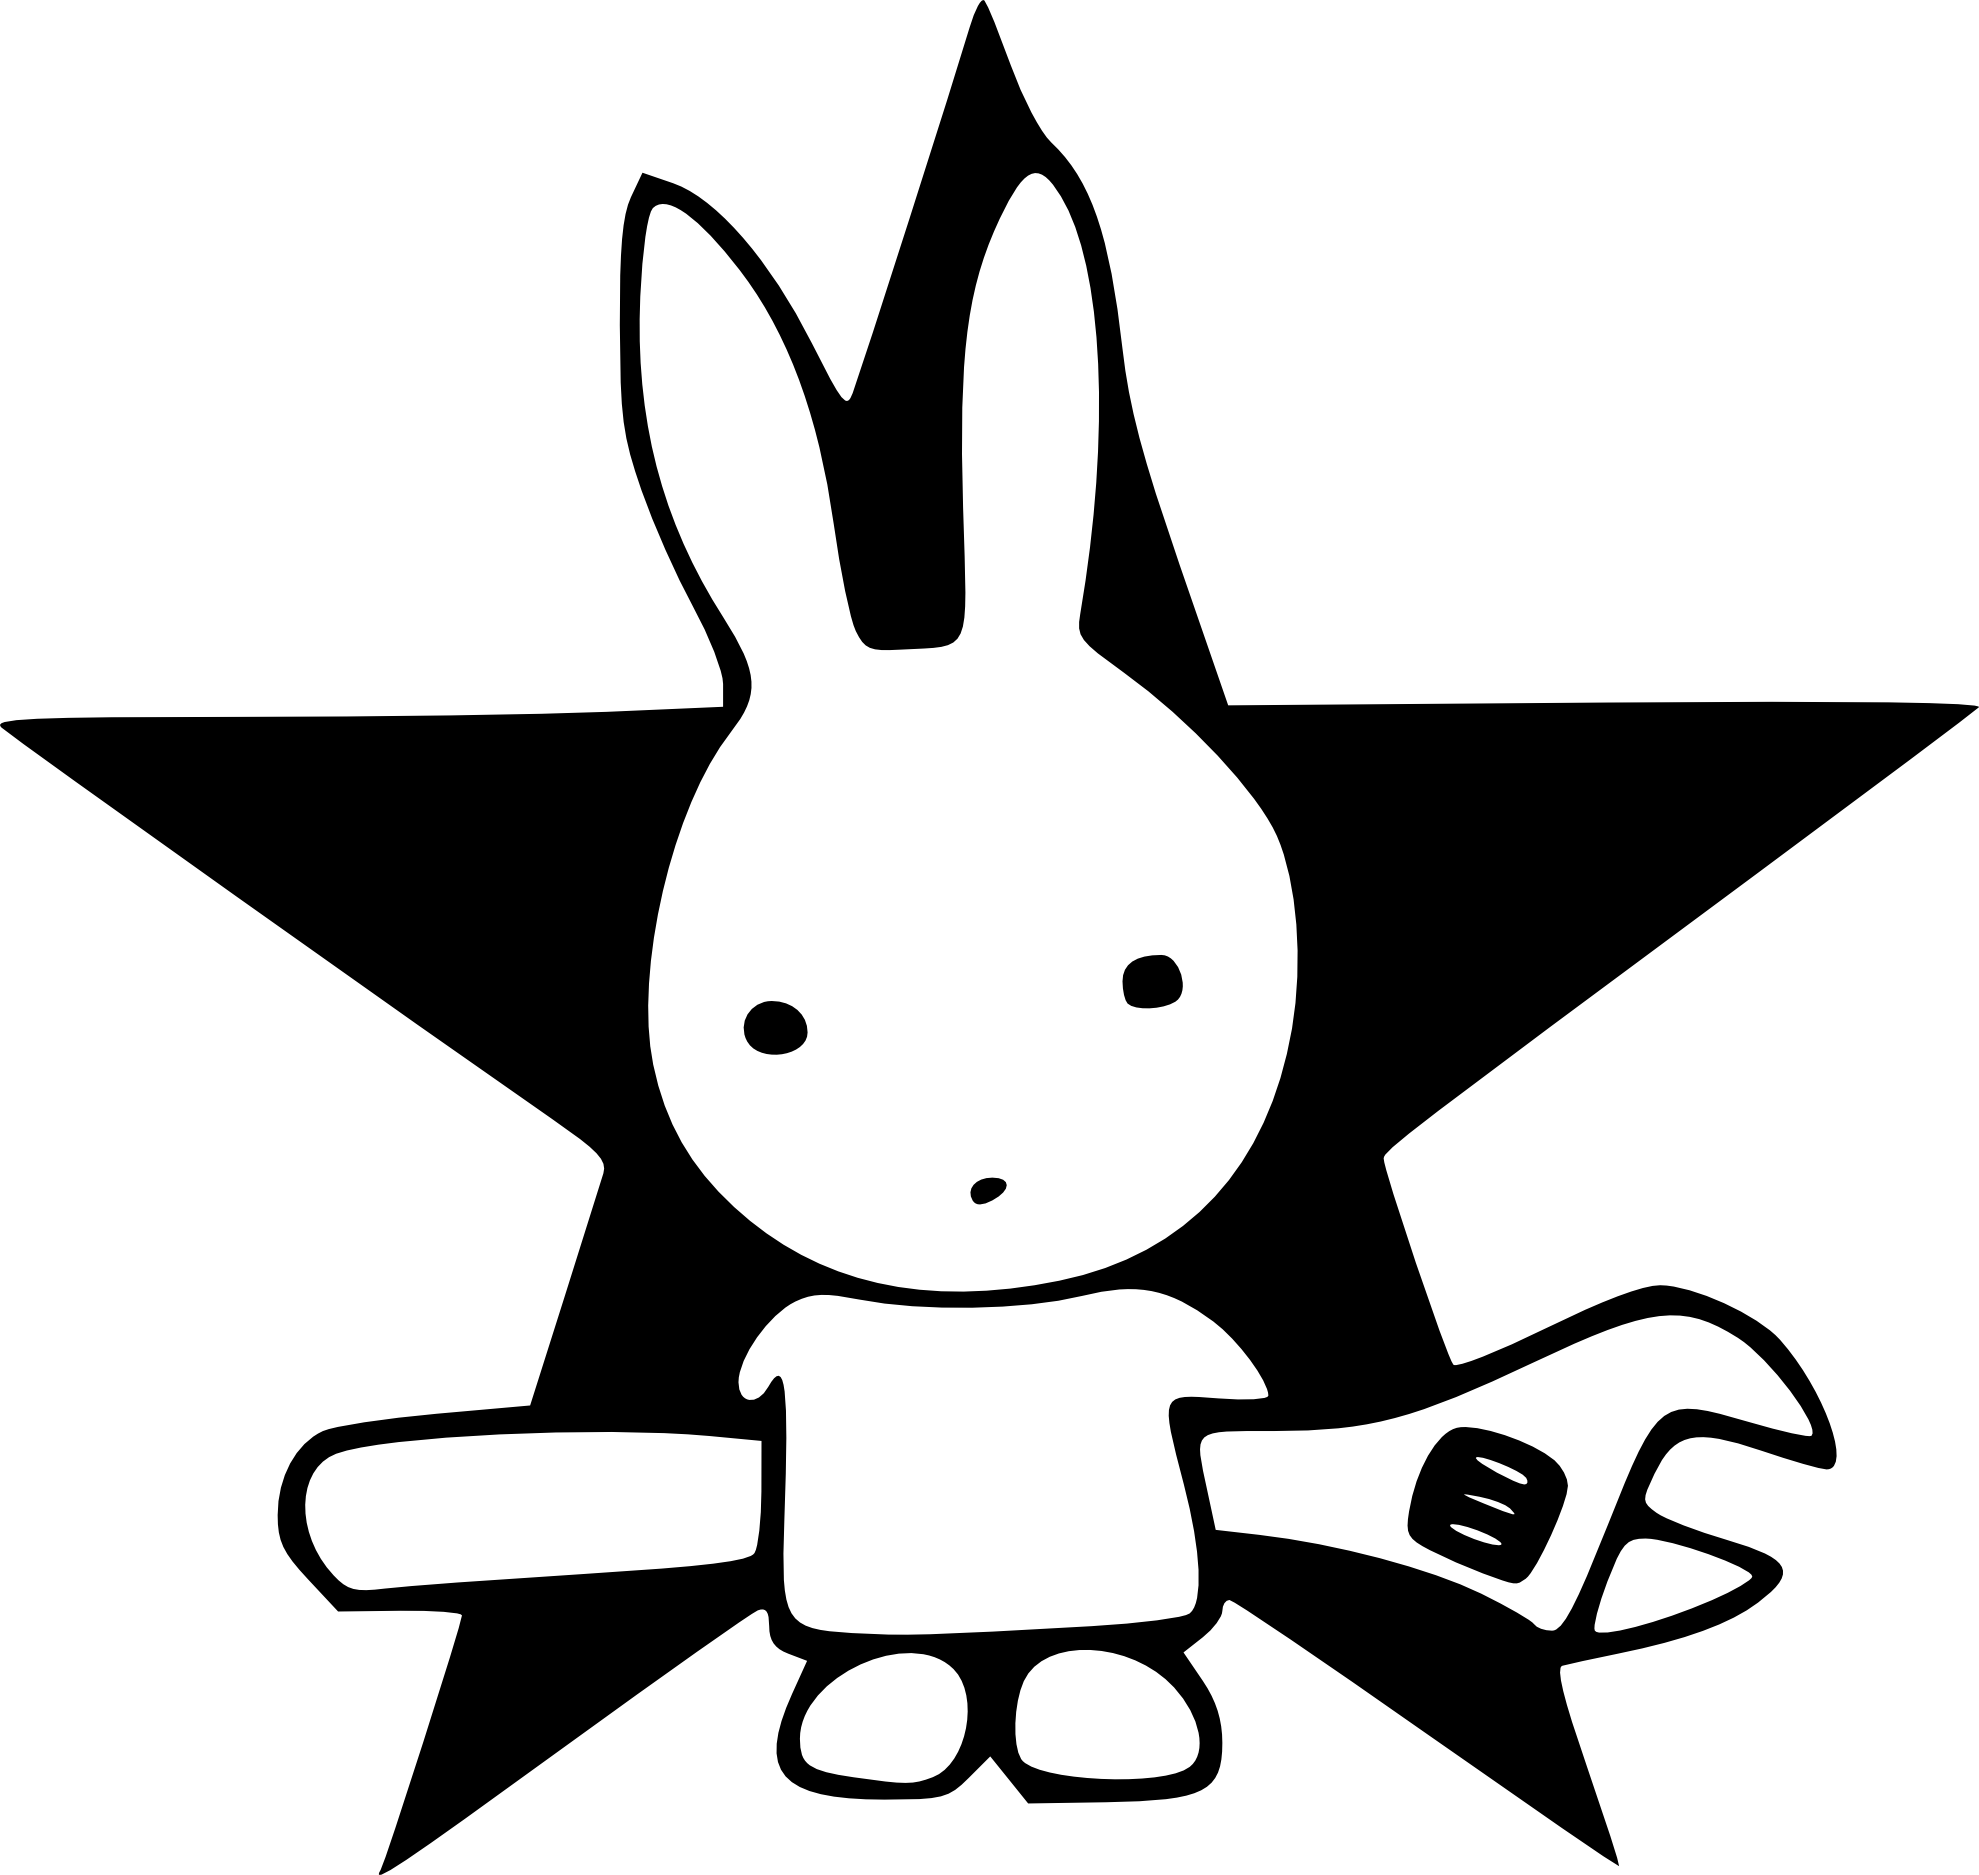 Clipart bunny black and white. Action rabbit panda free